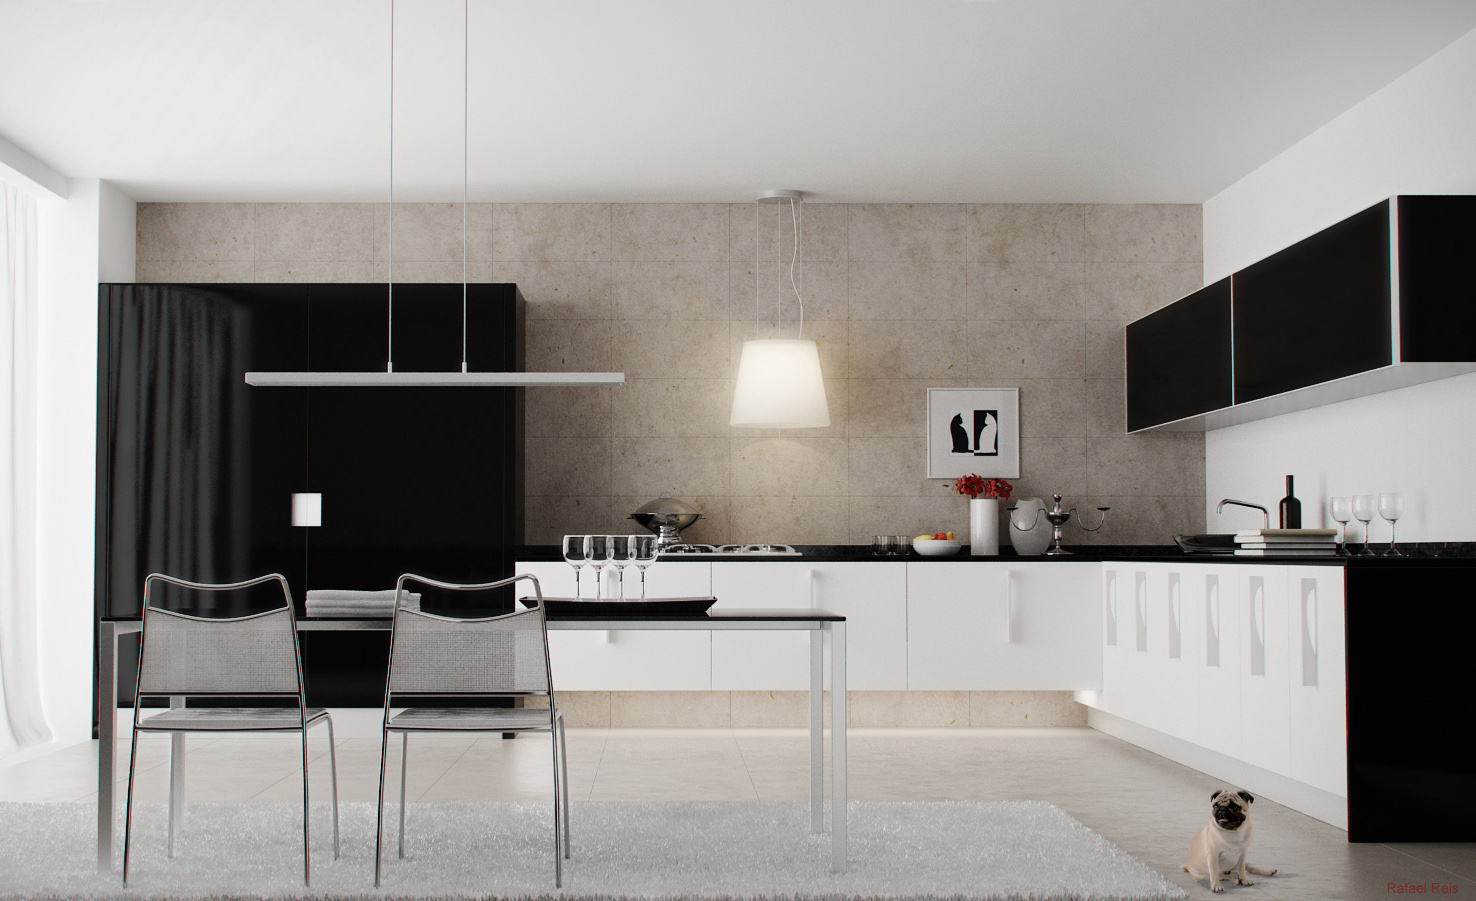 Black white kitchen diner interior design ideas for Cocinas en blanco y negro